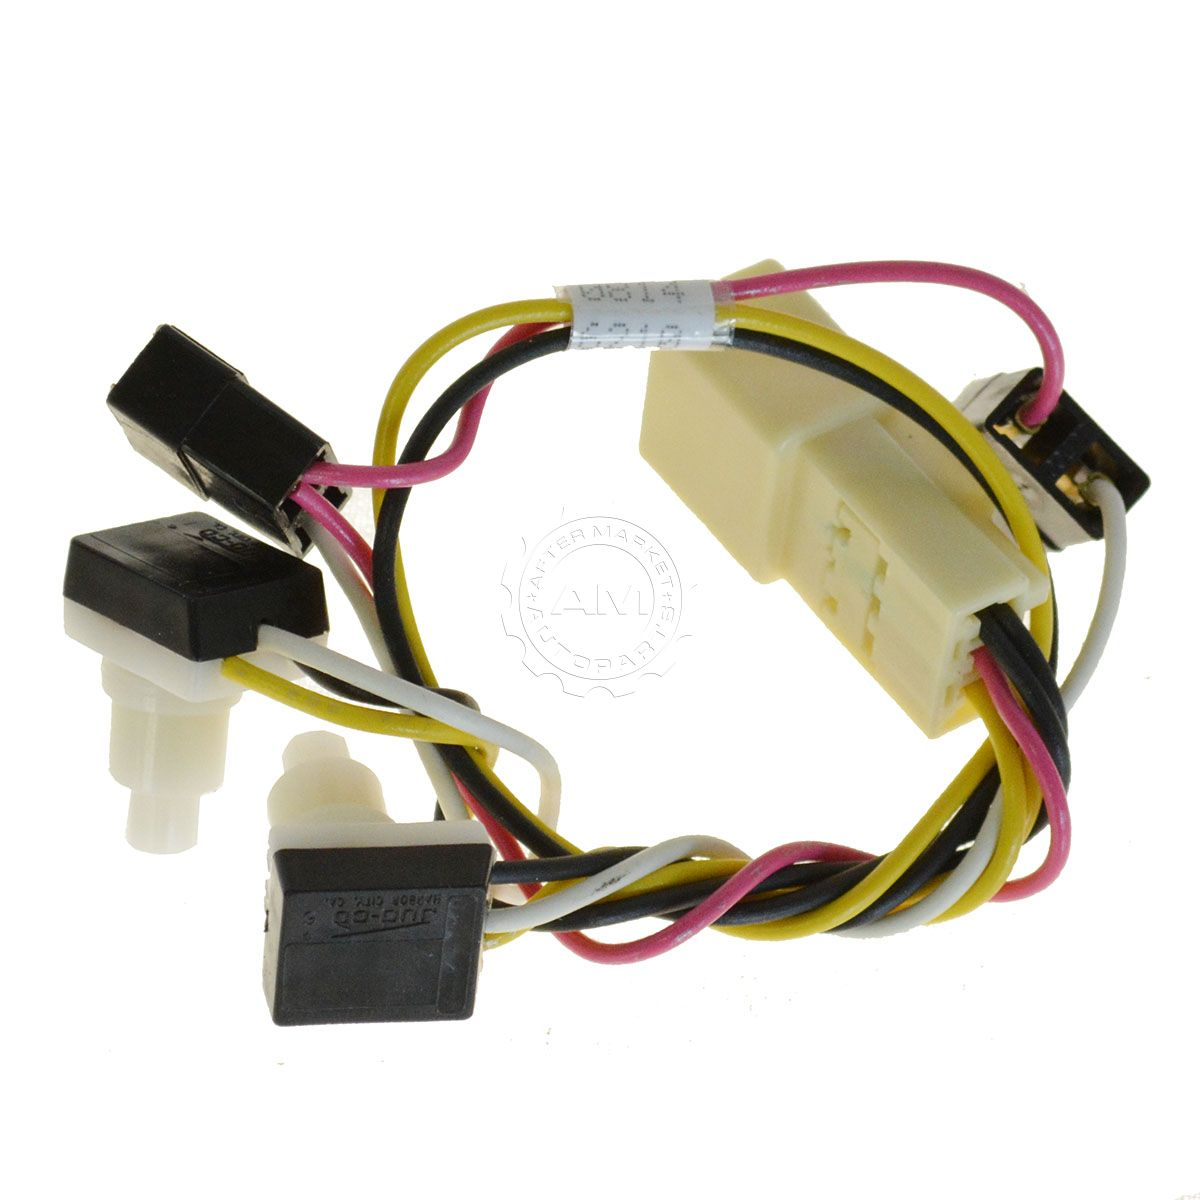 AM 1654819132 oem overhead console map light wiring harness & switches for dodge  at gsmx.co